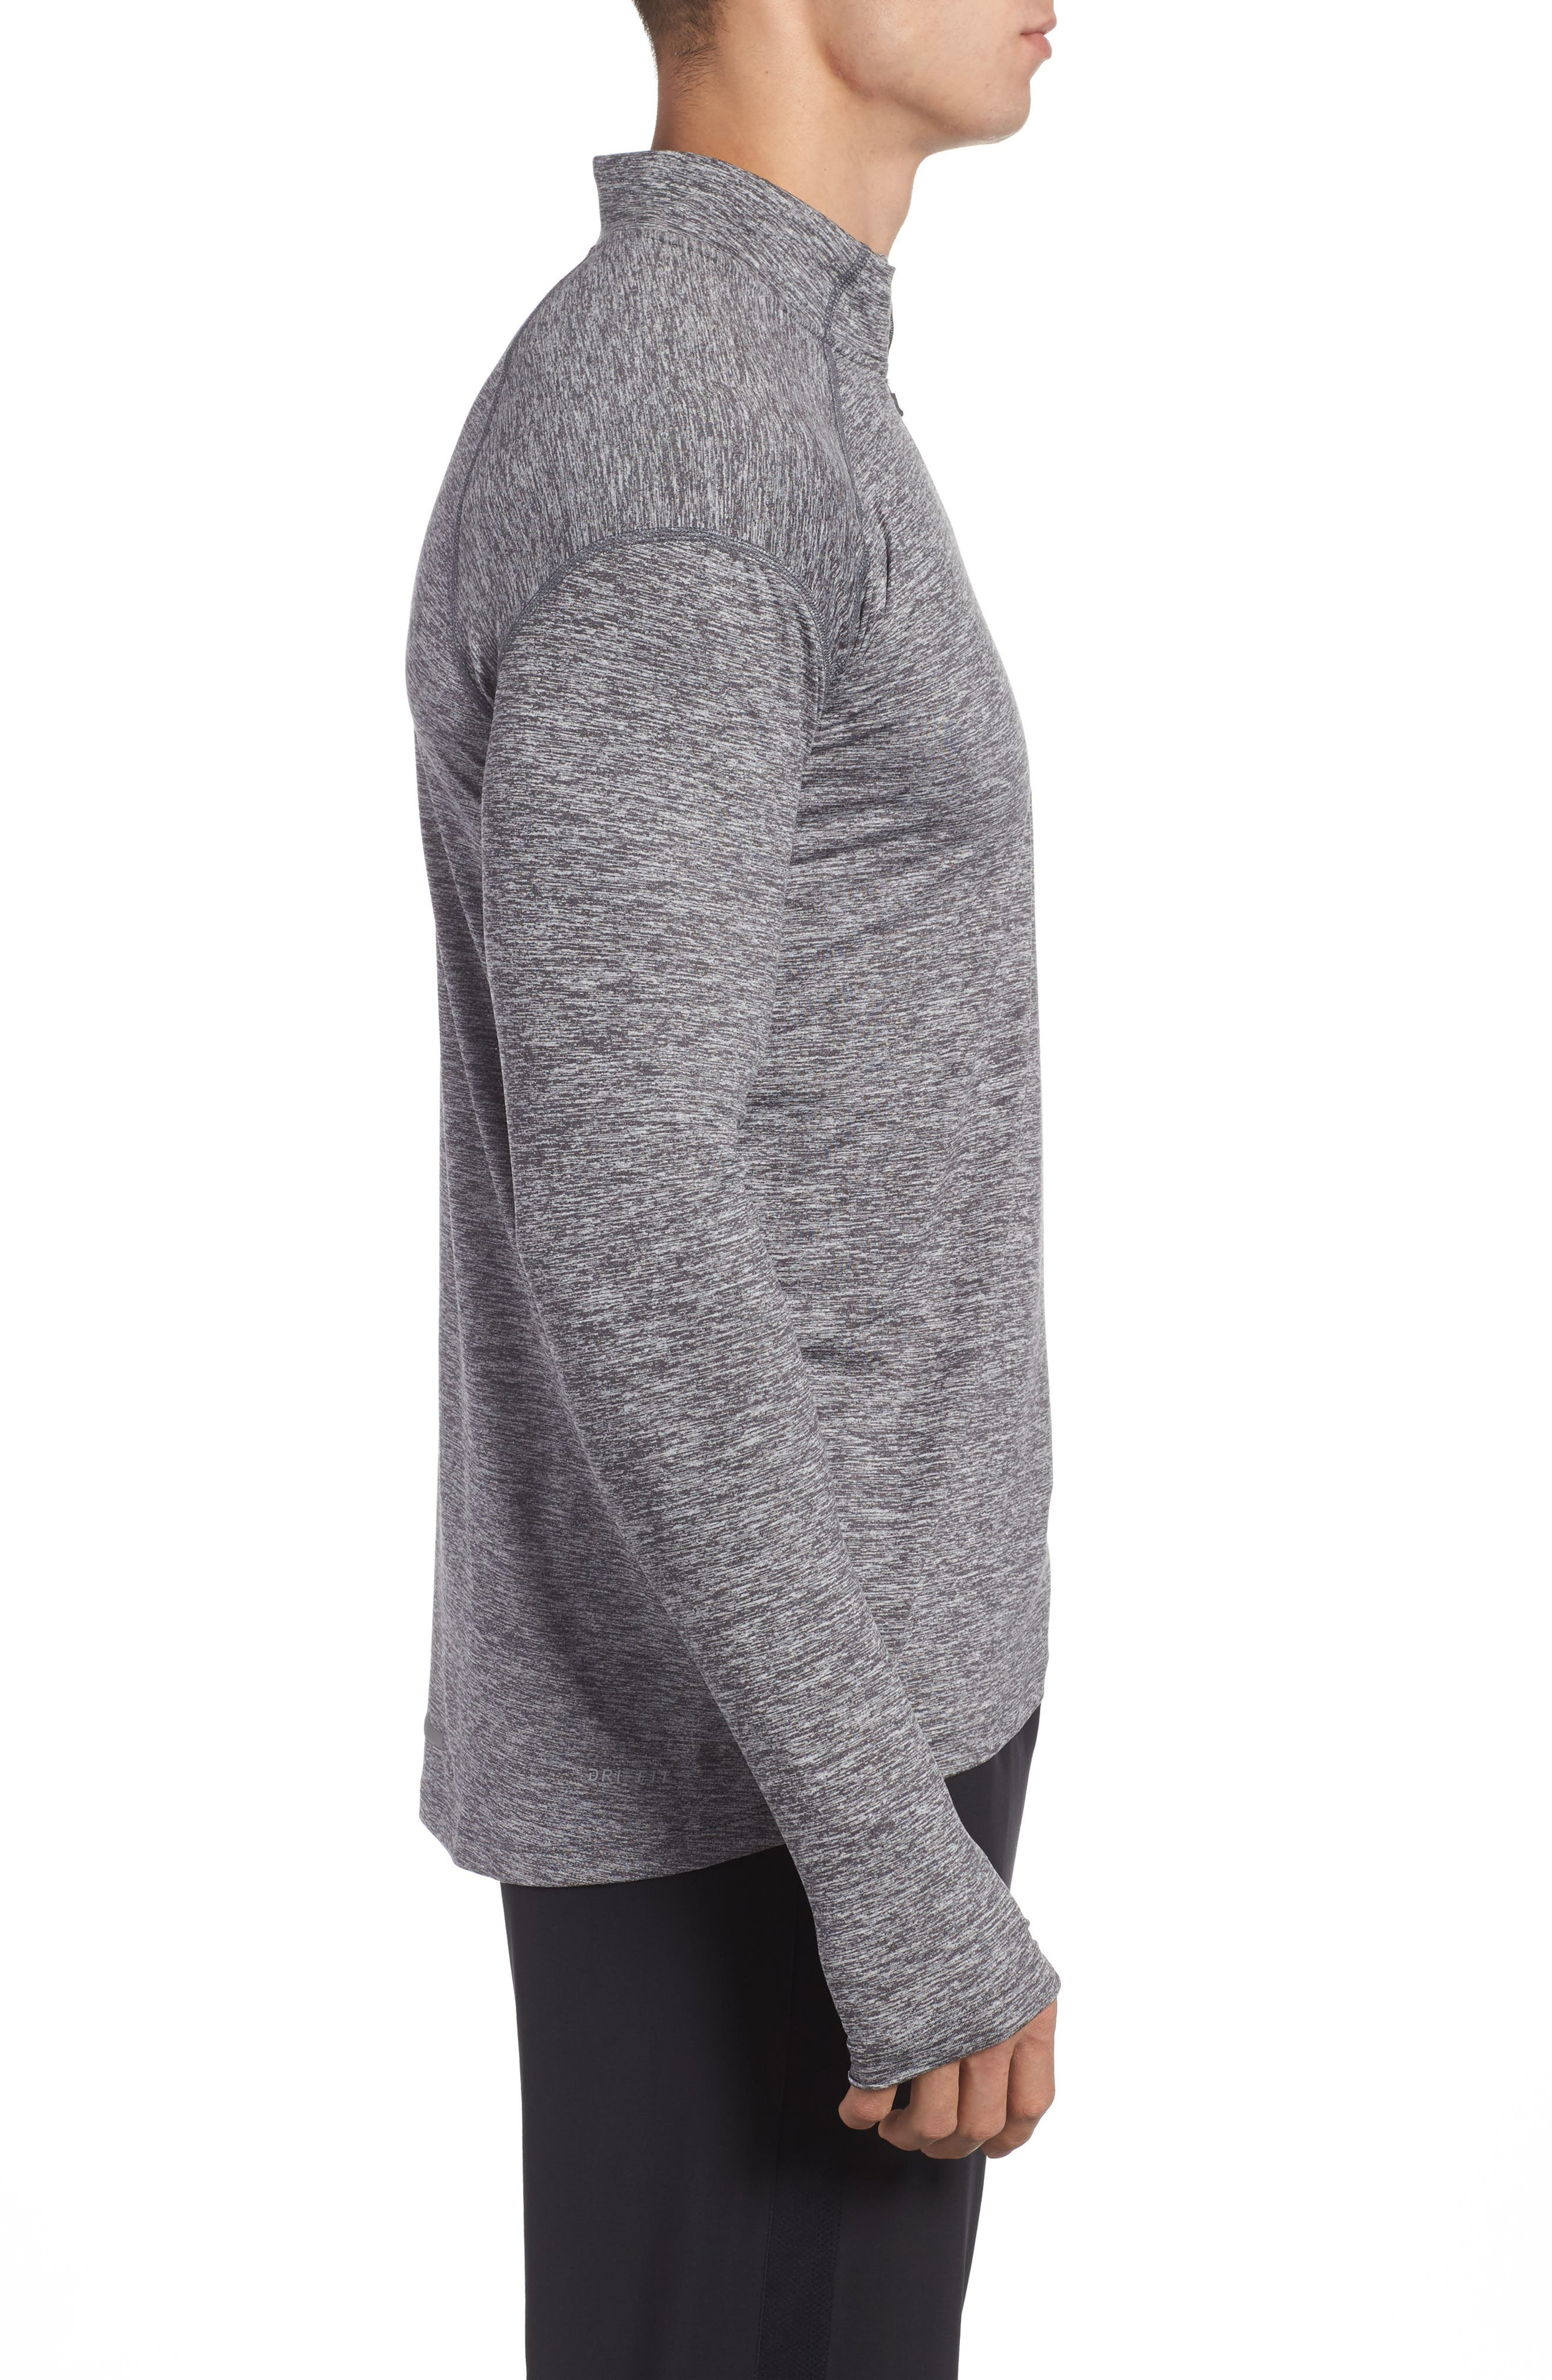 Dry Element Running Top,                             Alternate thumbnail 19, color,